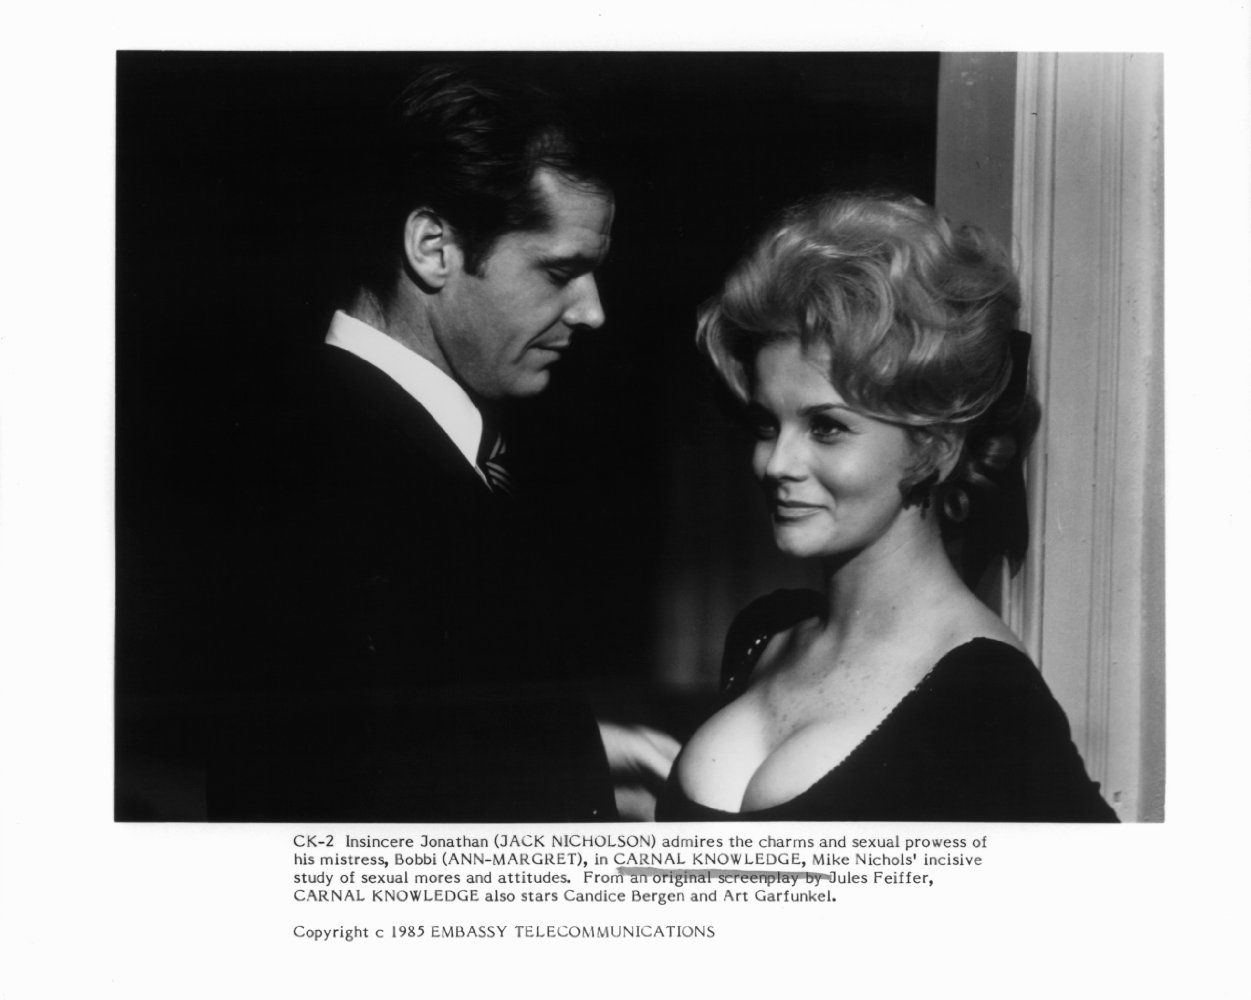 Jack Nicholson and Ann-Margret in Carnal Knowledge